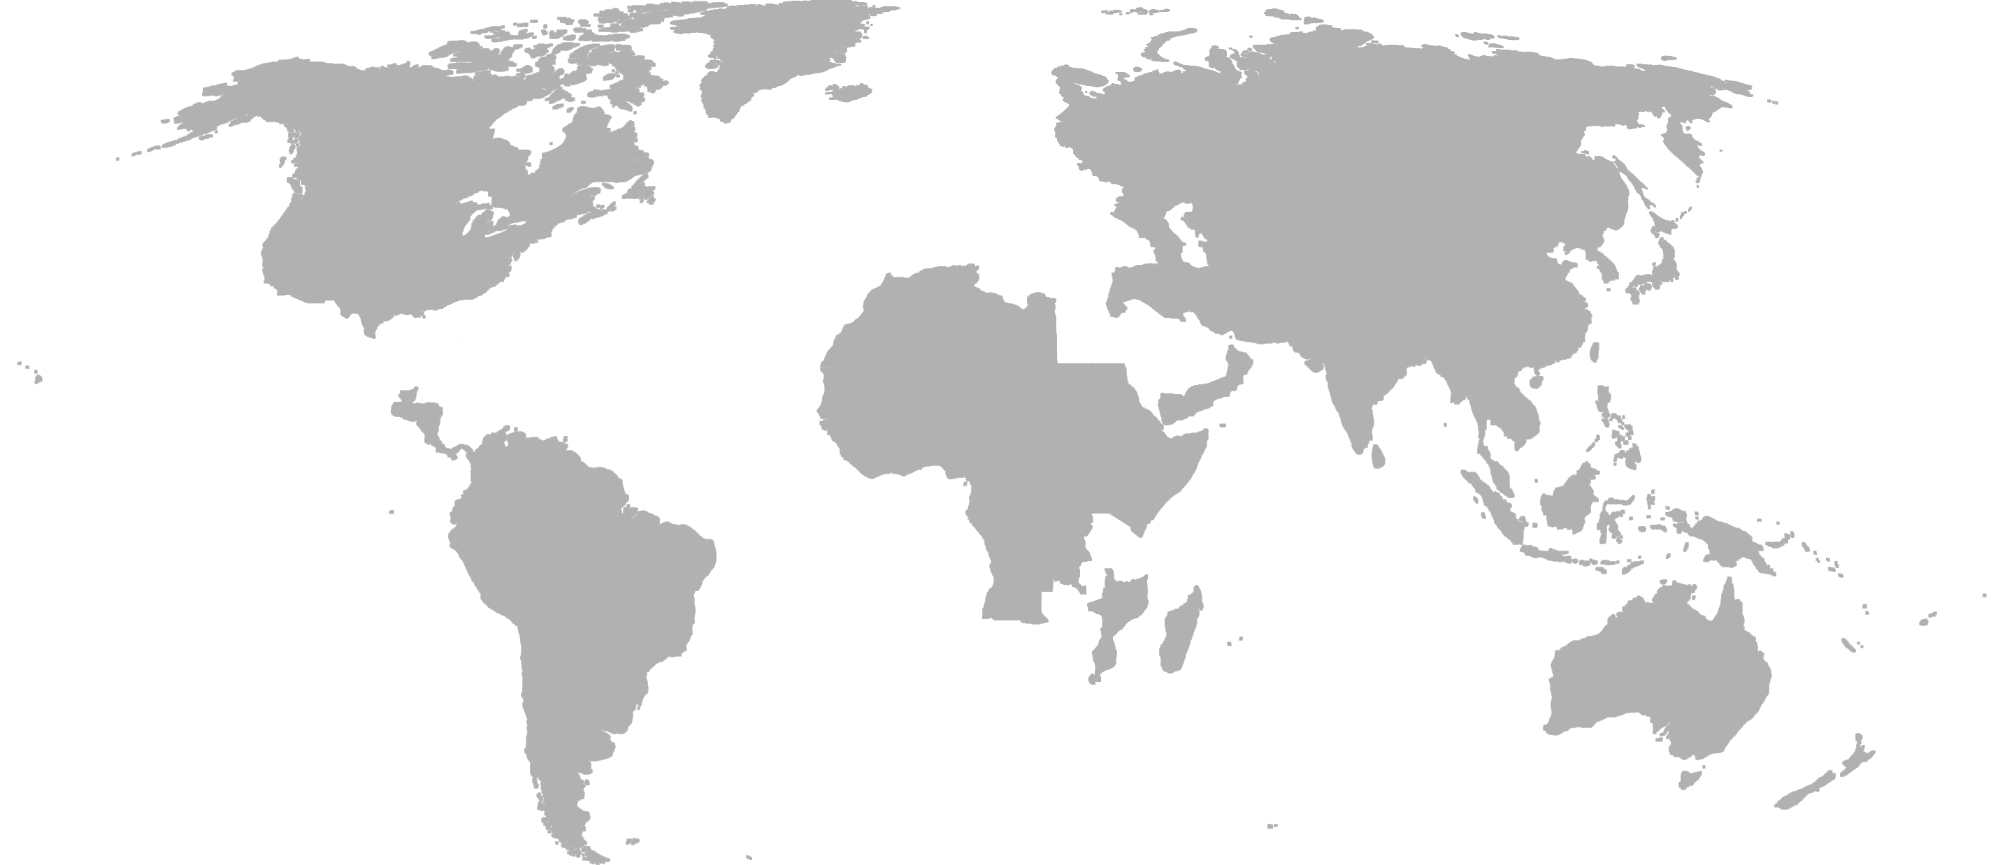 Map showing the location of Nutickets software resellers across 3 continents